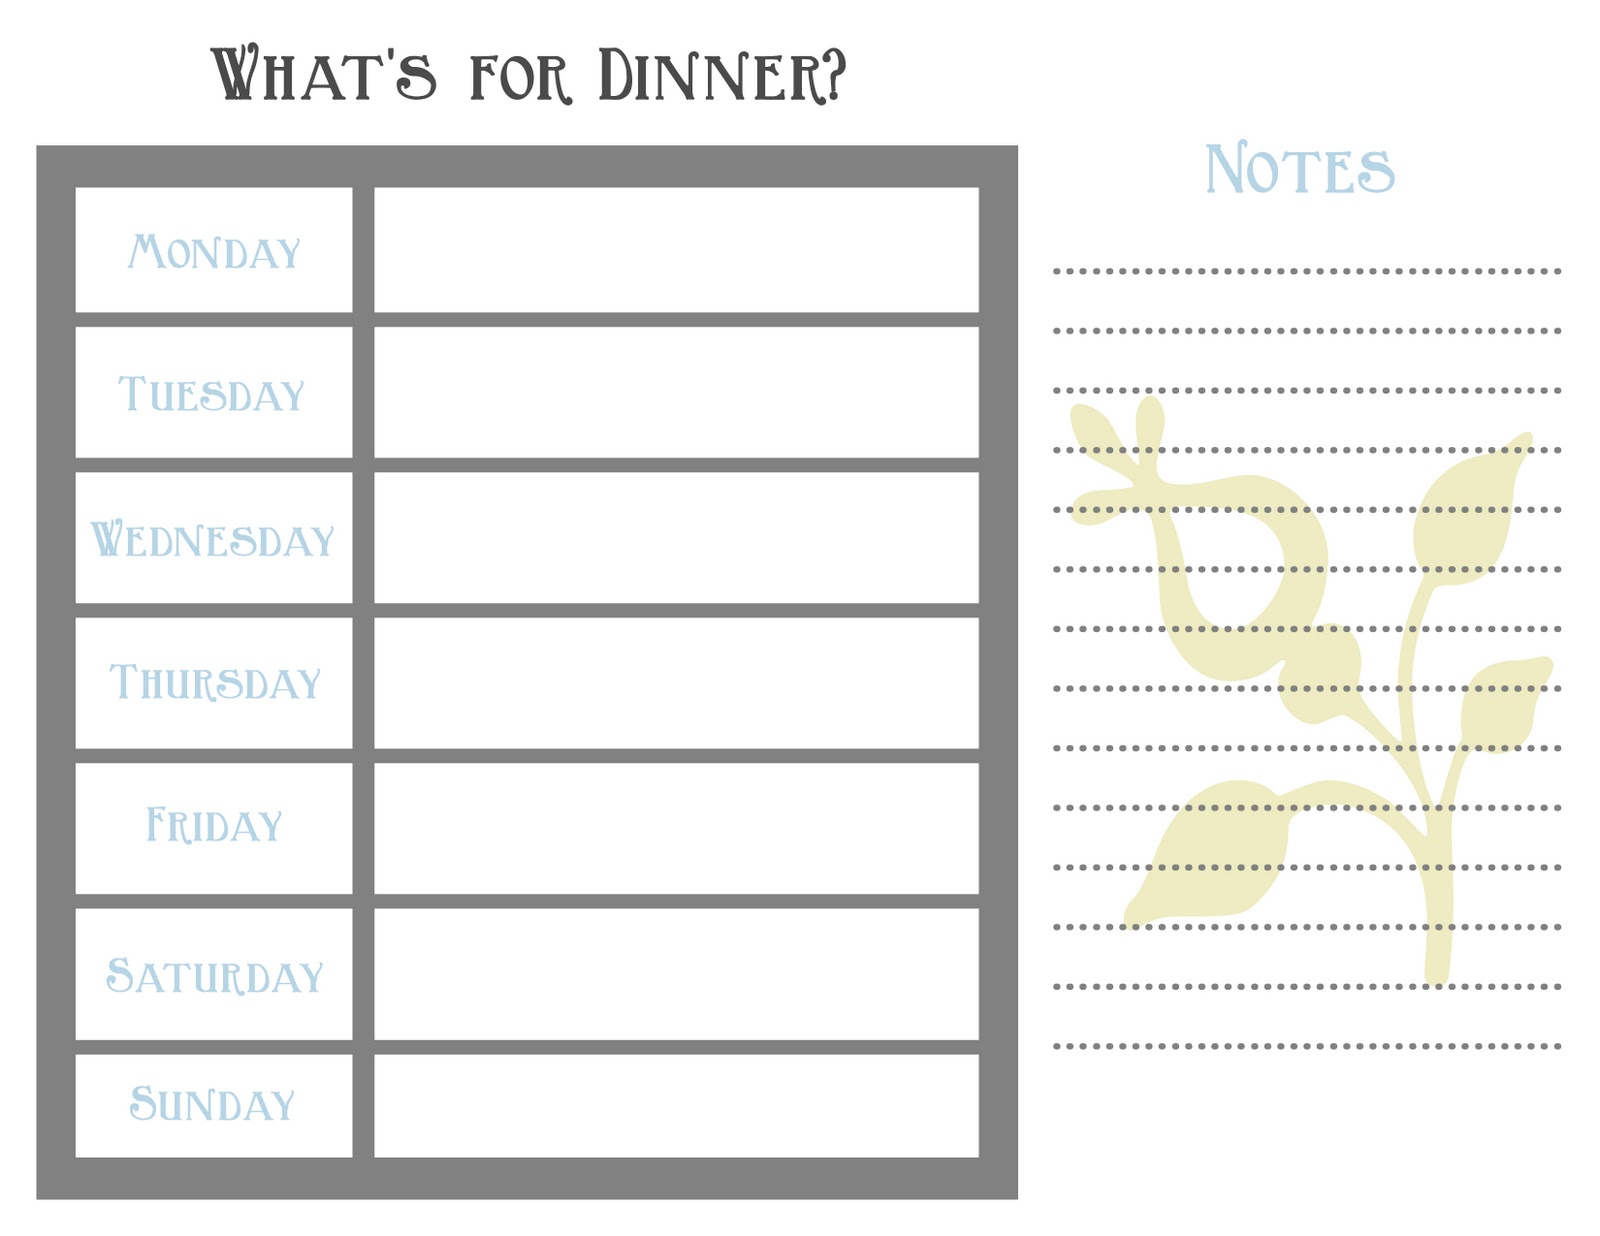 ... For Dinner? Menu Planning challenge. Menu planning templates provided